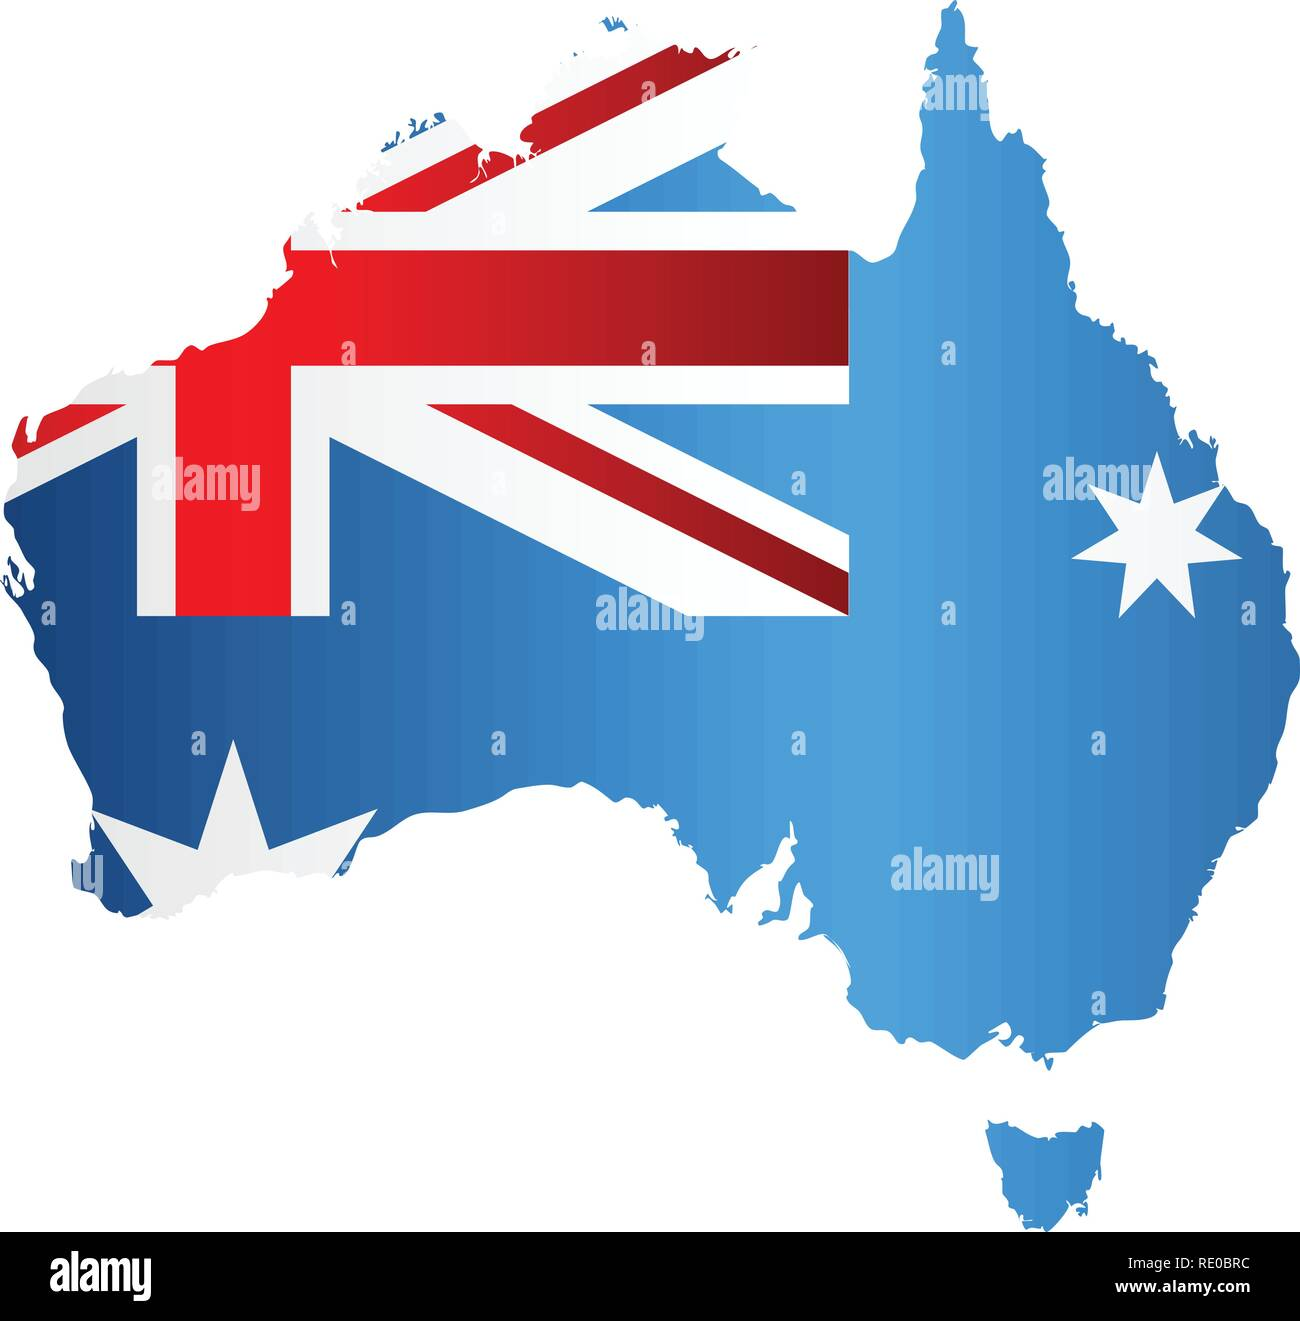 Australia Map With Flag.Australia Map Flag Inside Stock Photos Australia Map Flag Inside